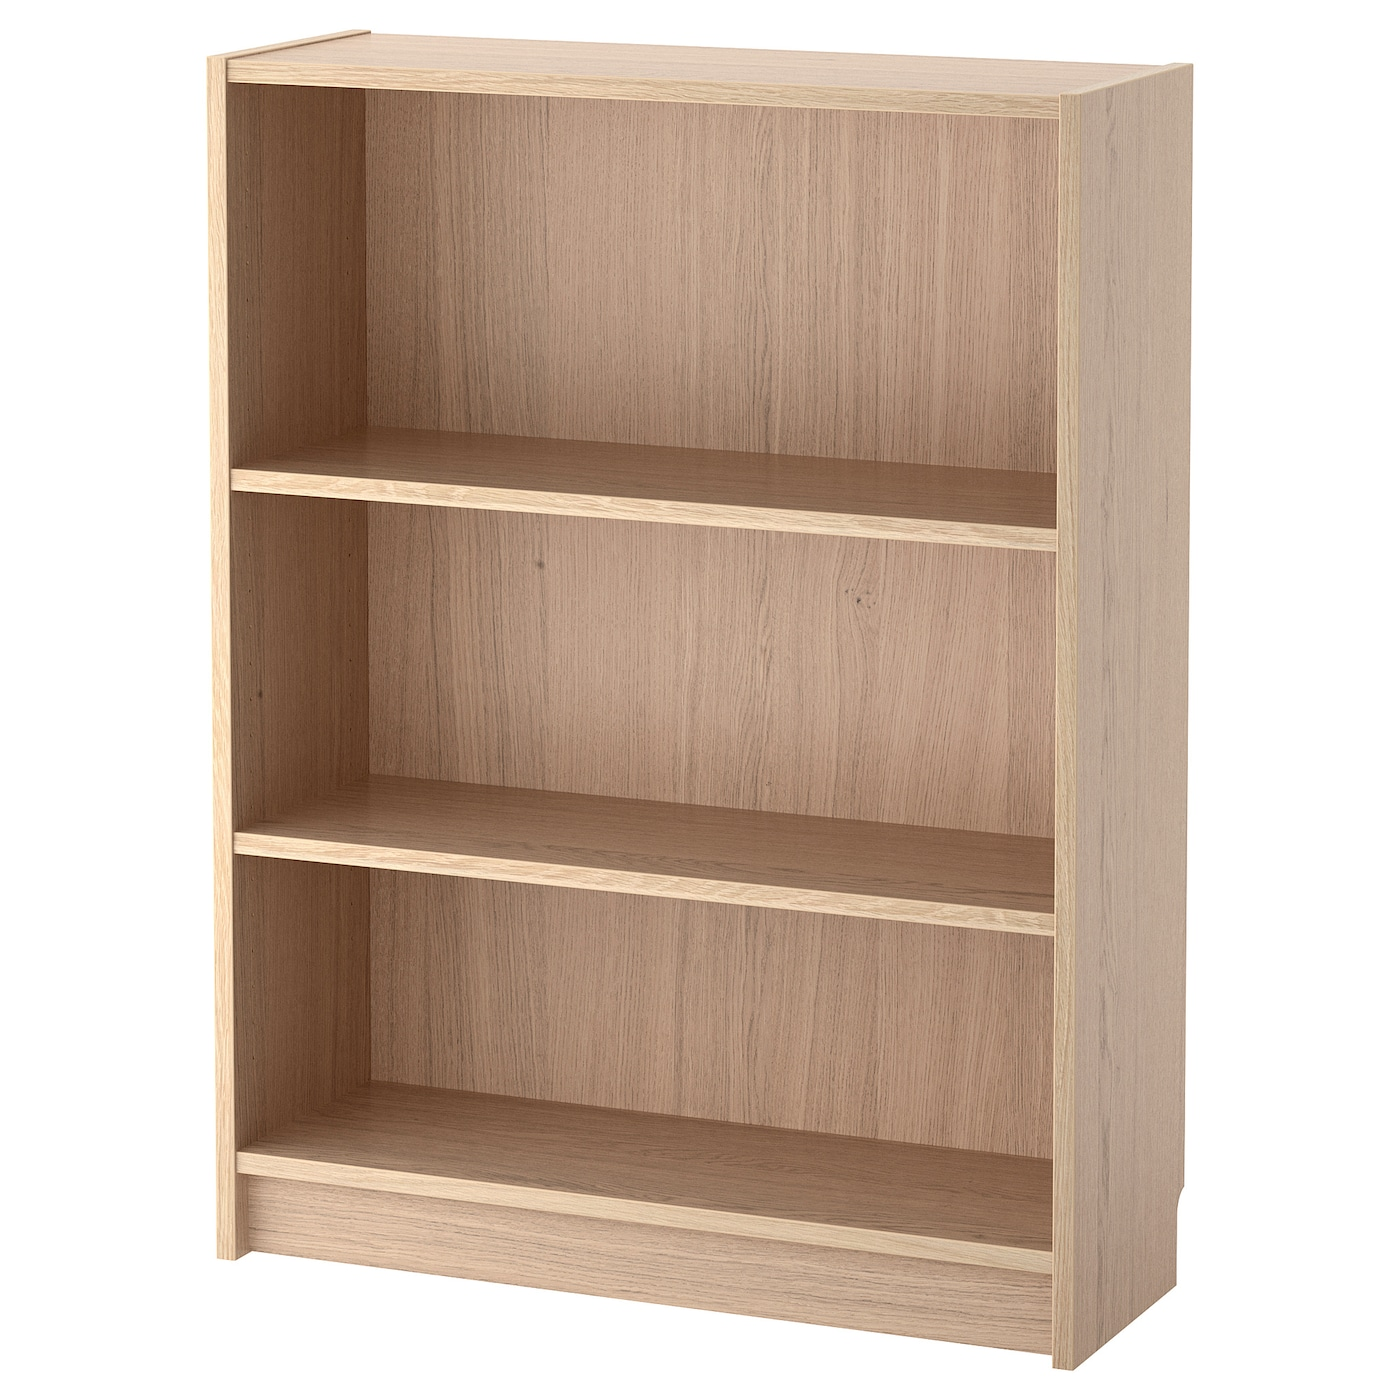 billy white bookshelves bookcase small me ikea trinahd bookshelf